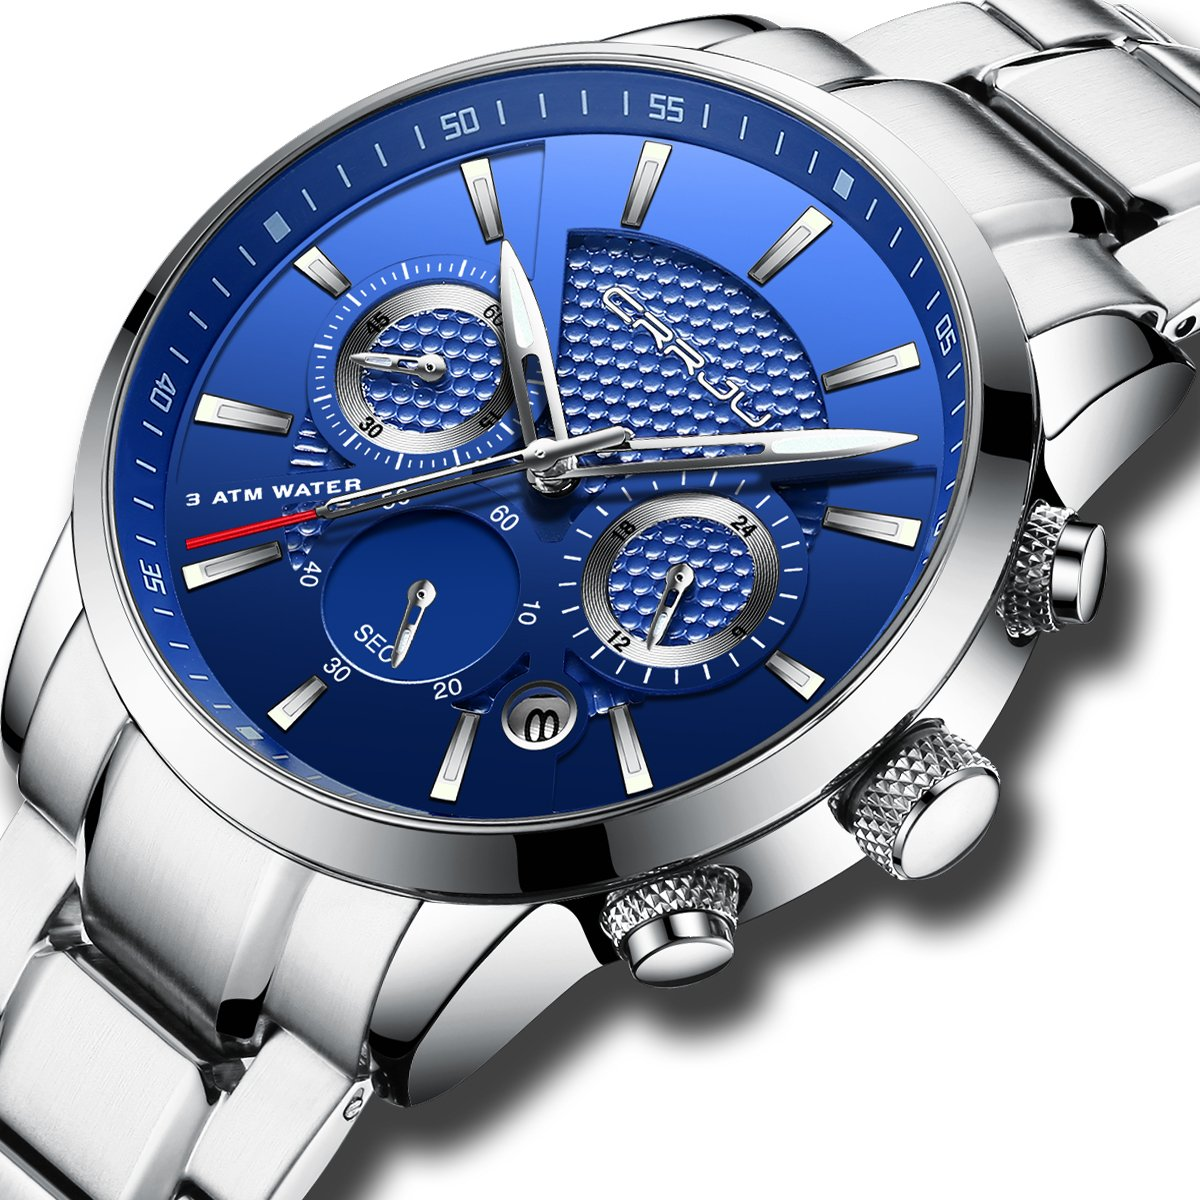 CRRJU Brand Mens Business Quartz Watch with Stainless Steel Band,Army Analog Unique Waterproof Calendar Wristwatch for Men